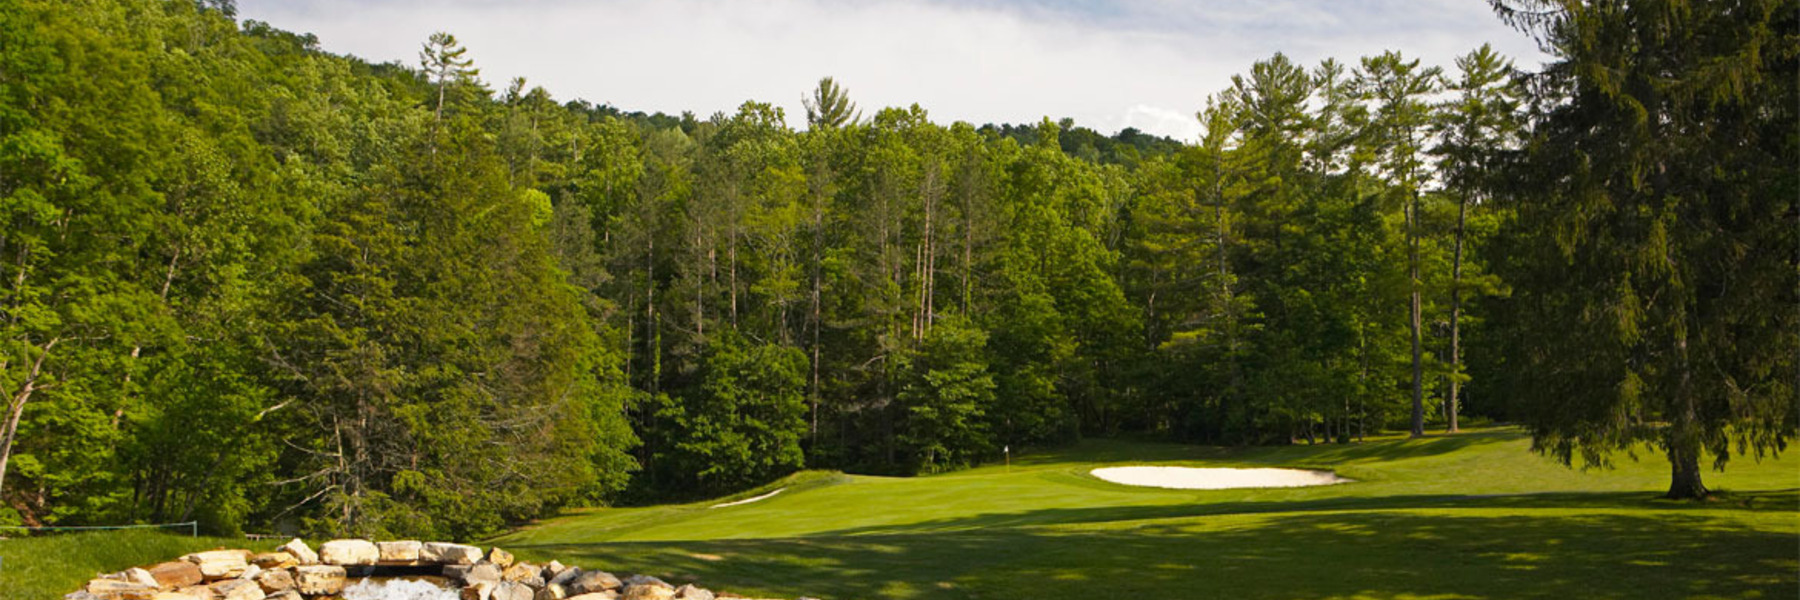 Golf Vacation Package - The Homestead - 2 Nights Lodging and 3 days of UNLIMITED GOLF for $510 Total!!